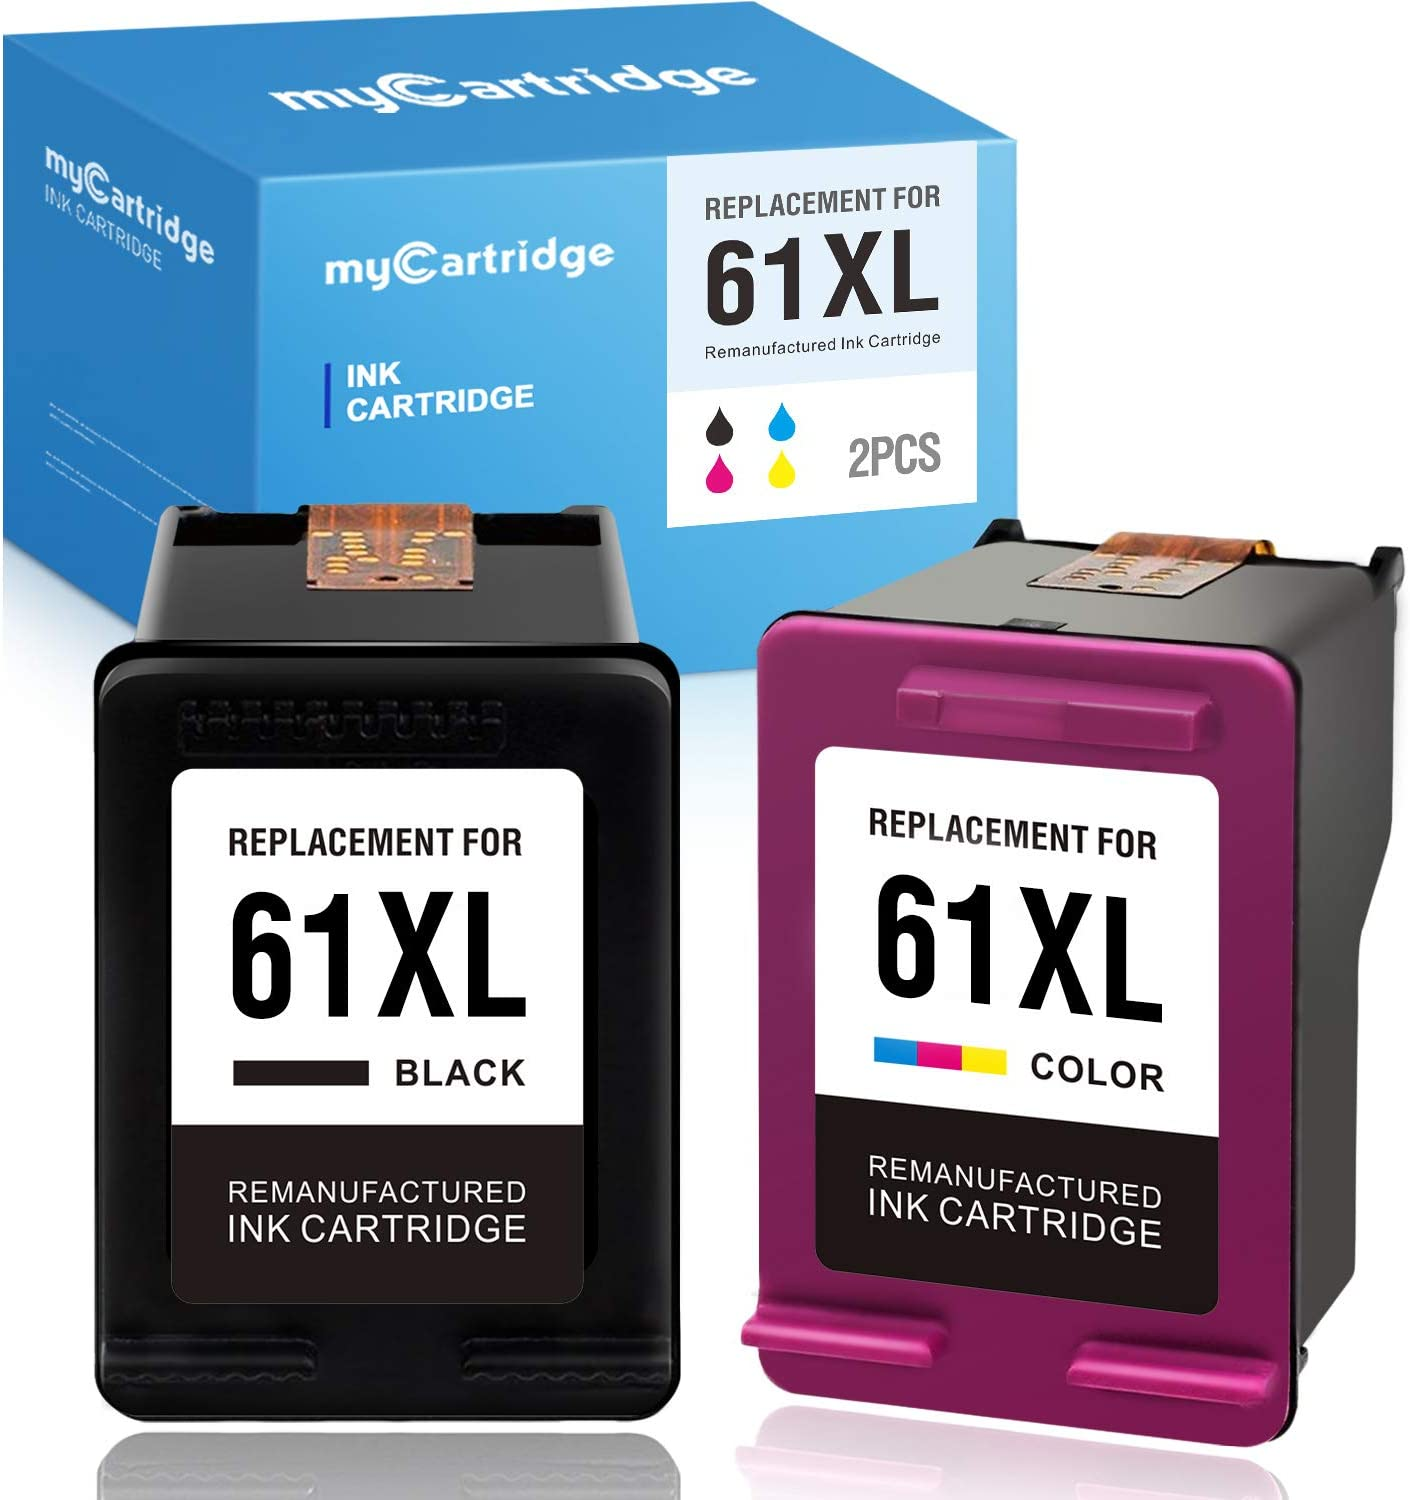 myCartridge Remanufactured Ink Cartridge Replacement for HP 61XL 61 Envy 4500 5531 5530 Deskjet 1010 3050A 1056 3510 2540 OfficeJet 4635 4630 (1 Black 1 Color)